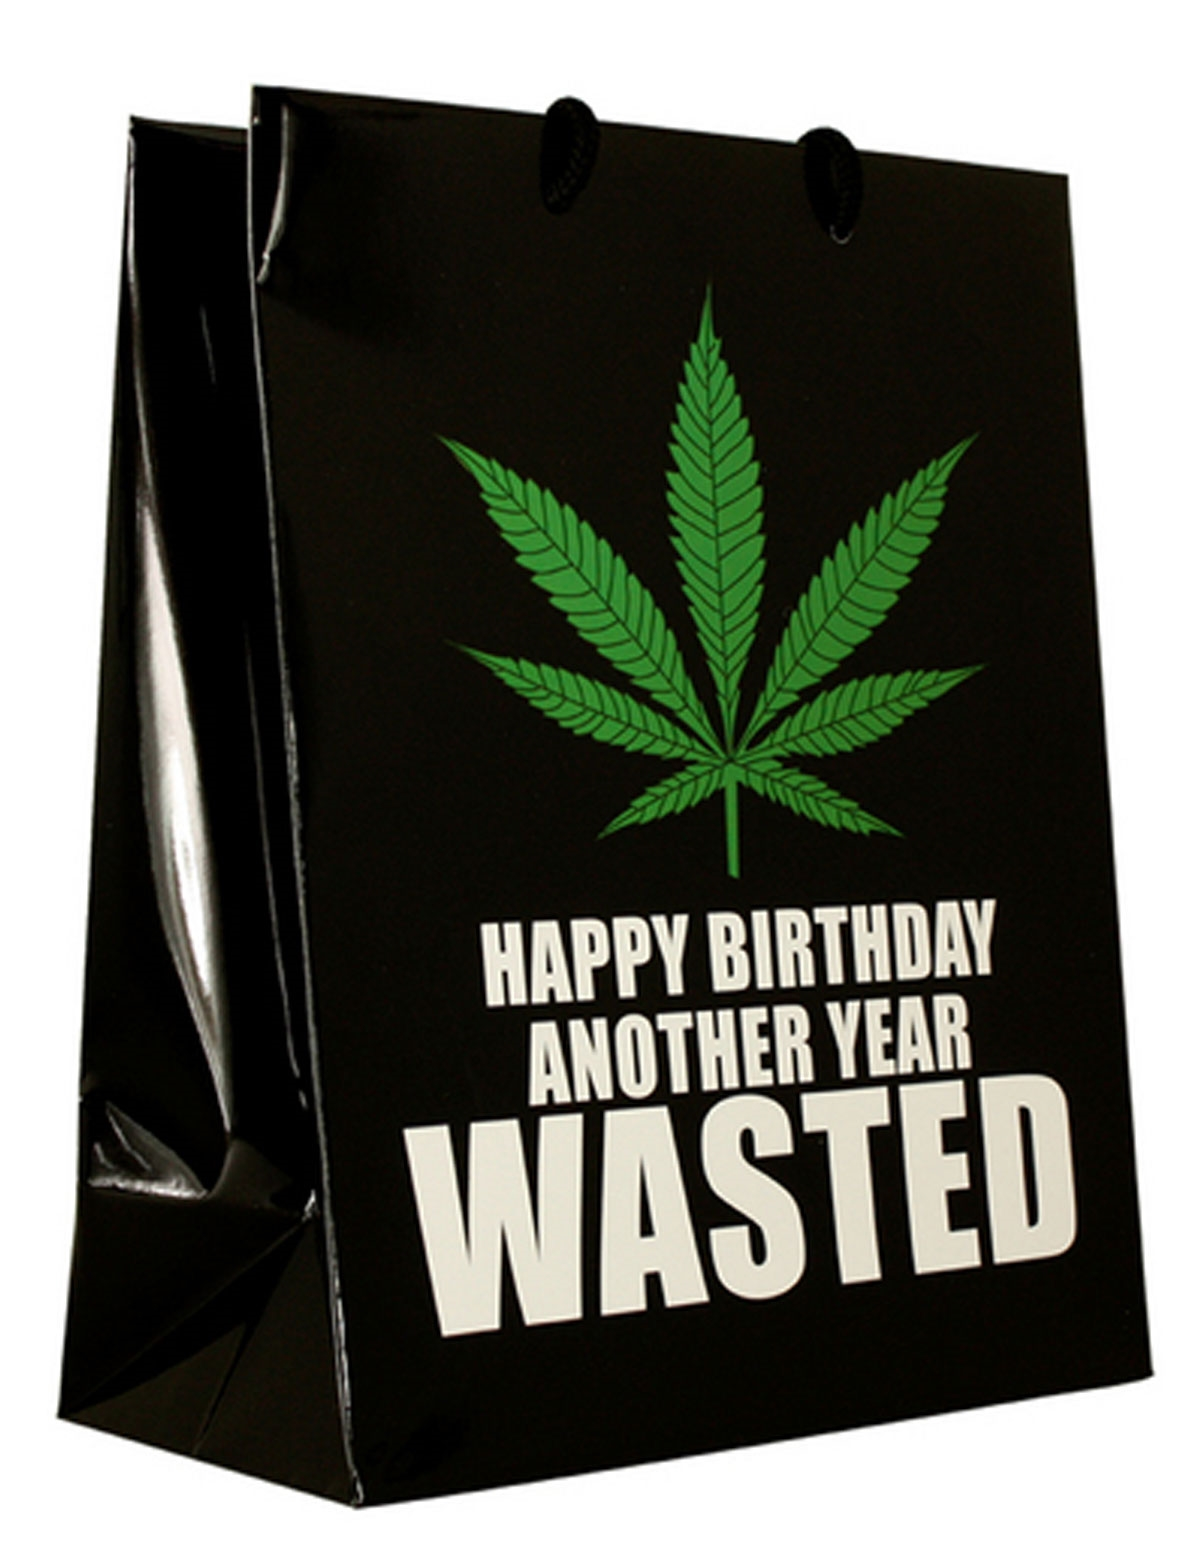 Another Year Wasted Gift Bag